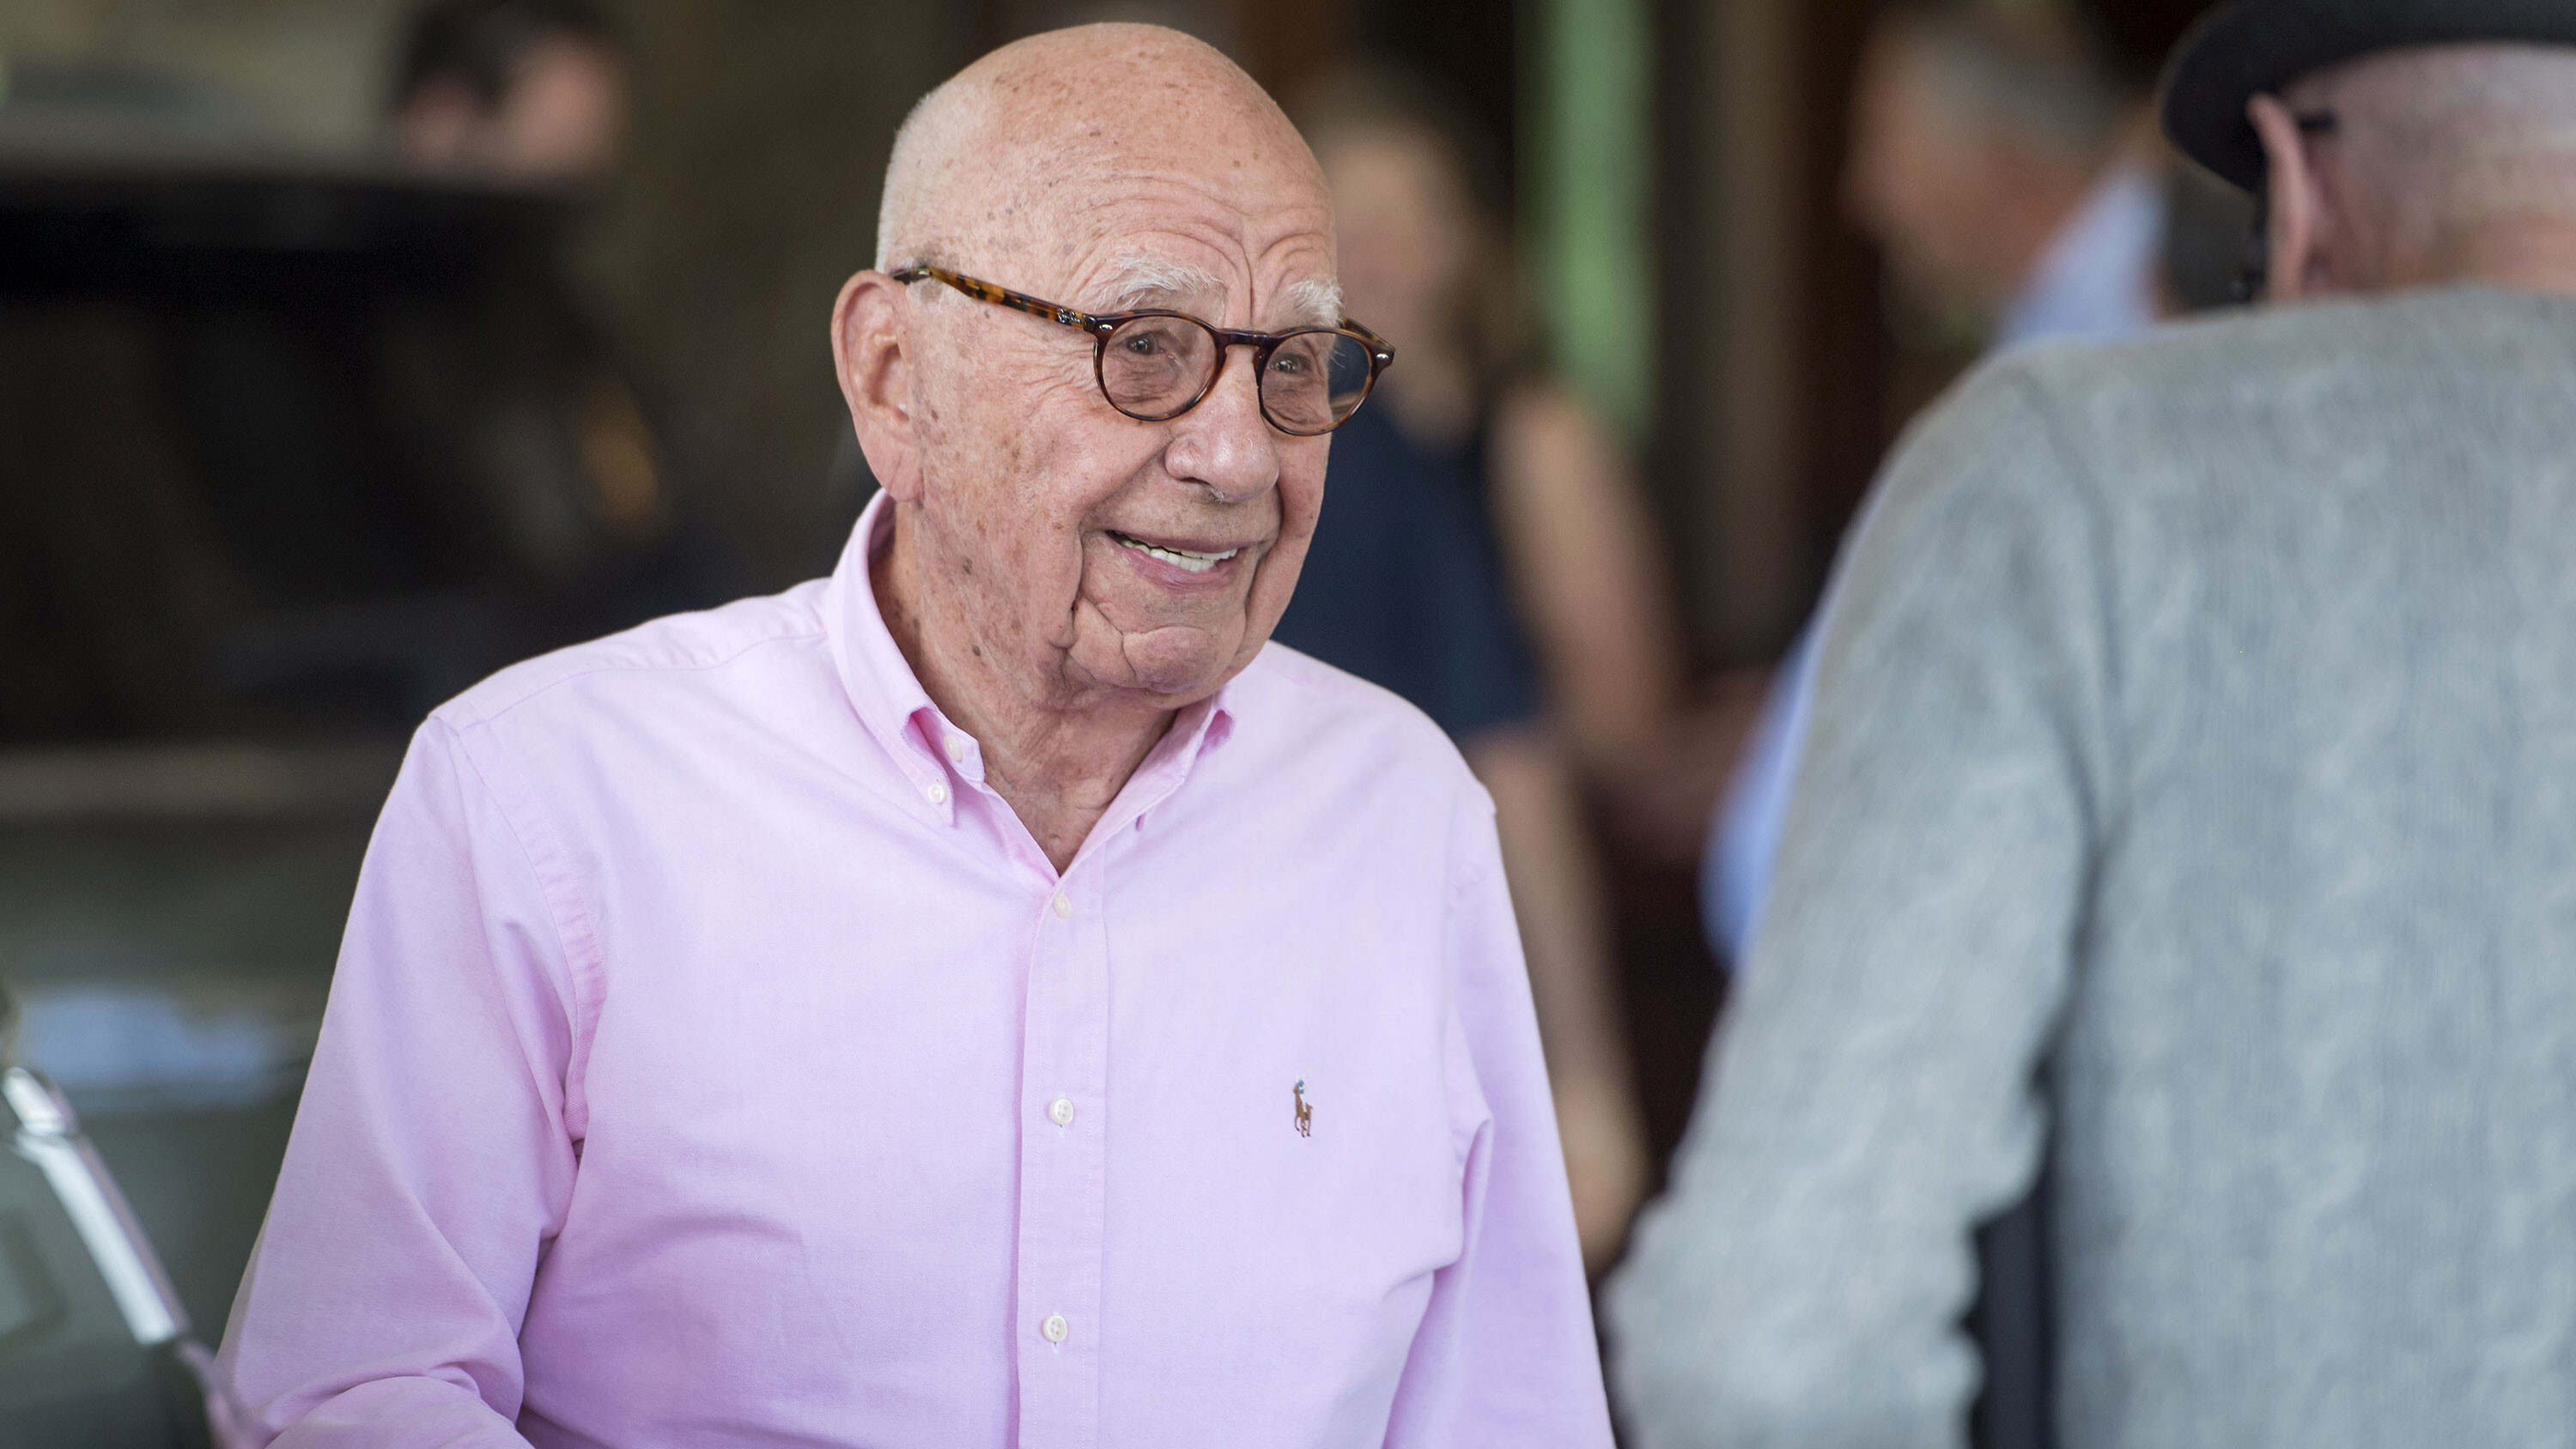 Rupert Murdoch is letting his media empire spread January 6 and election conspiracy theories